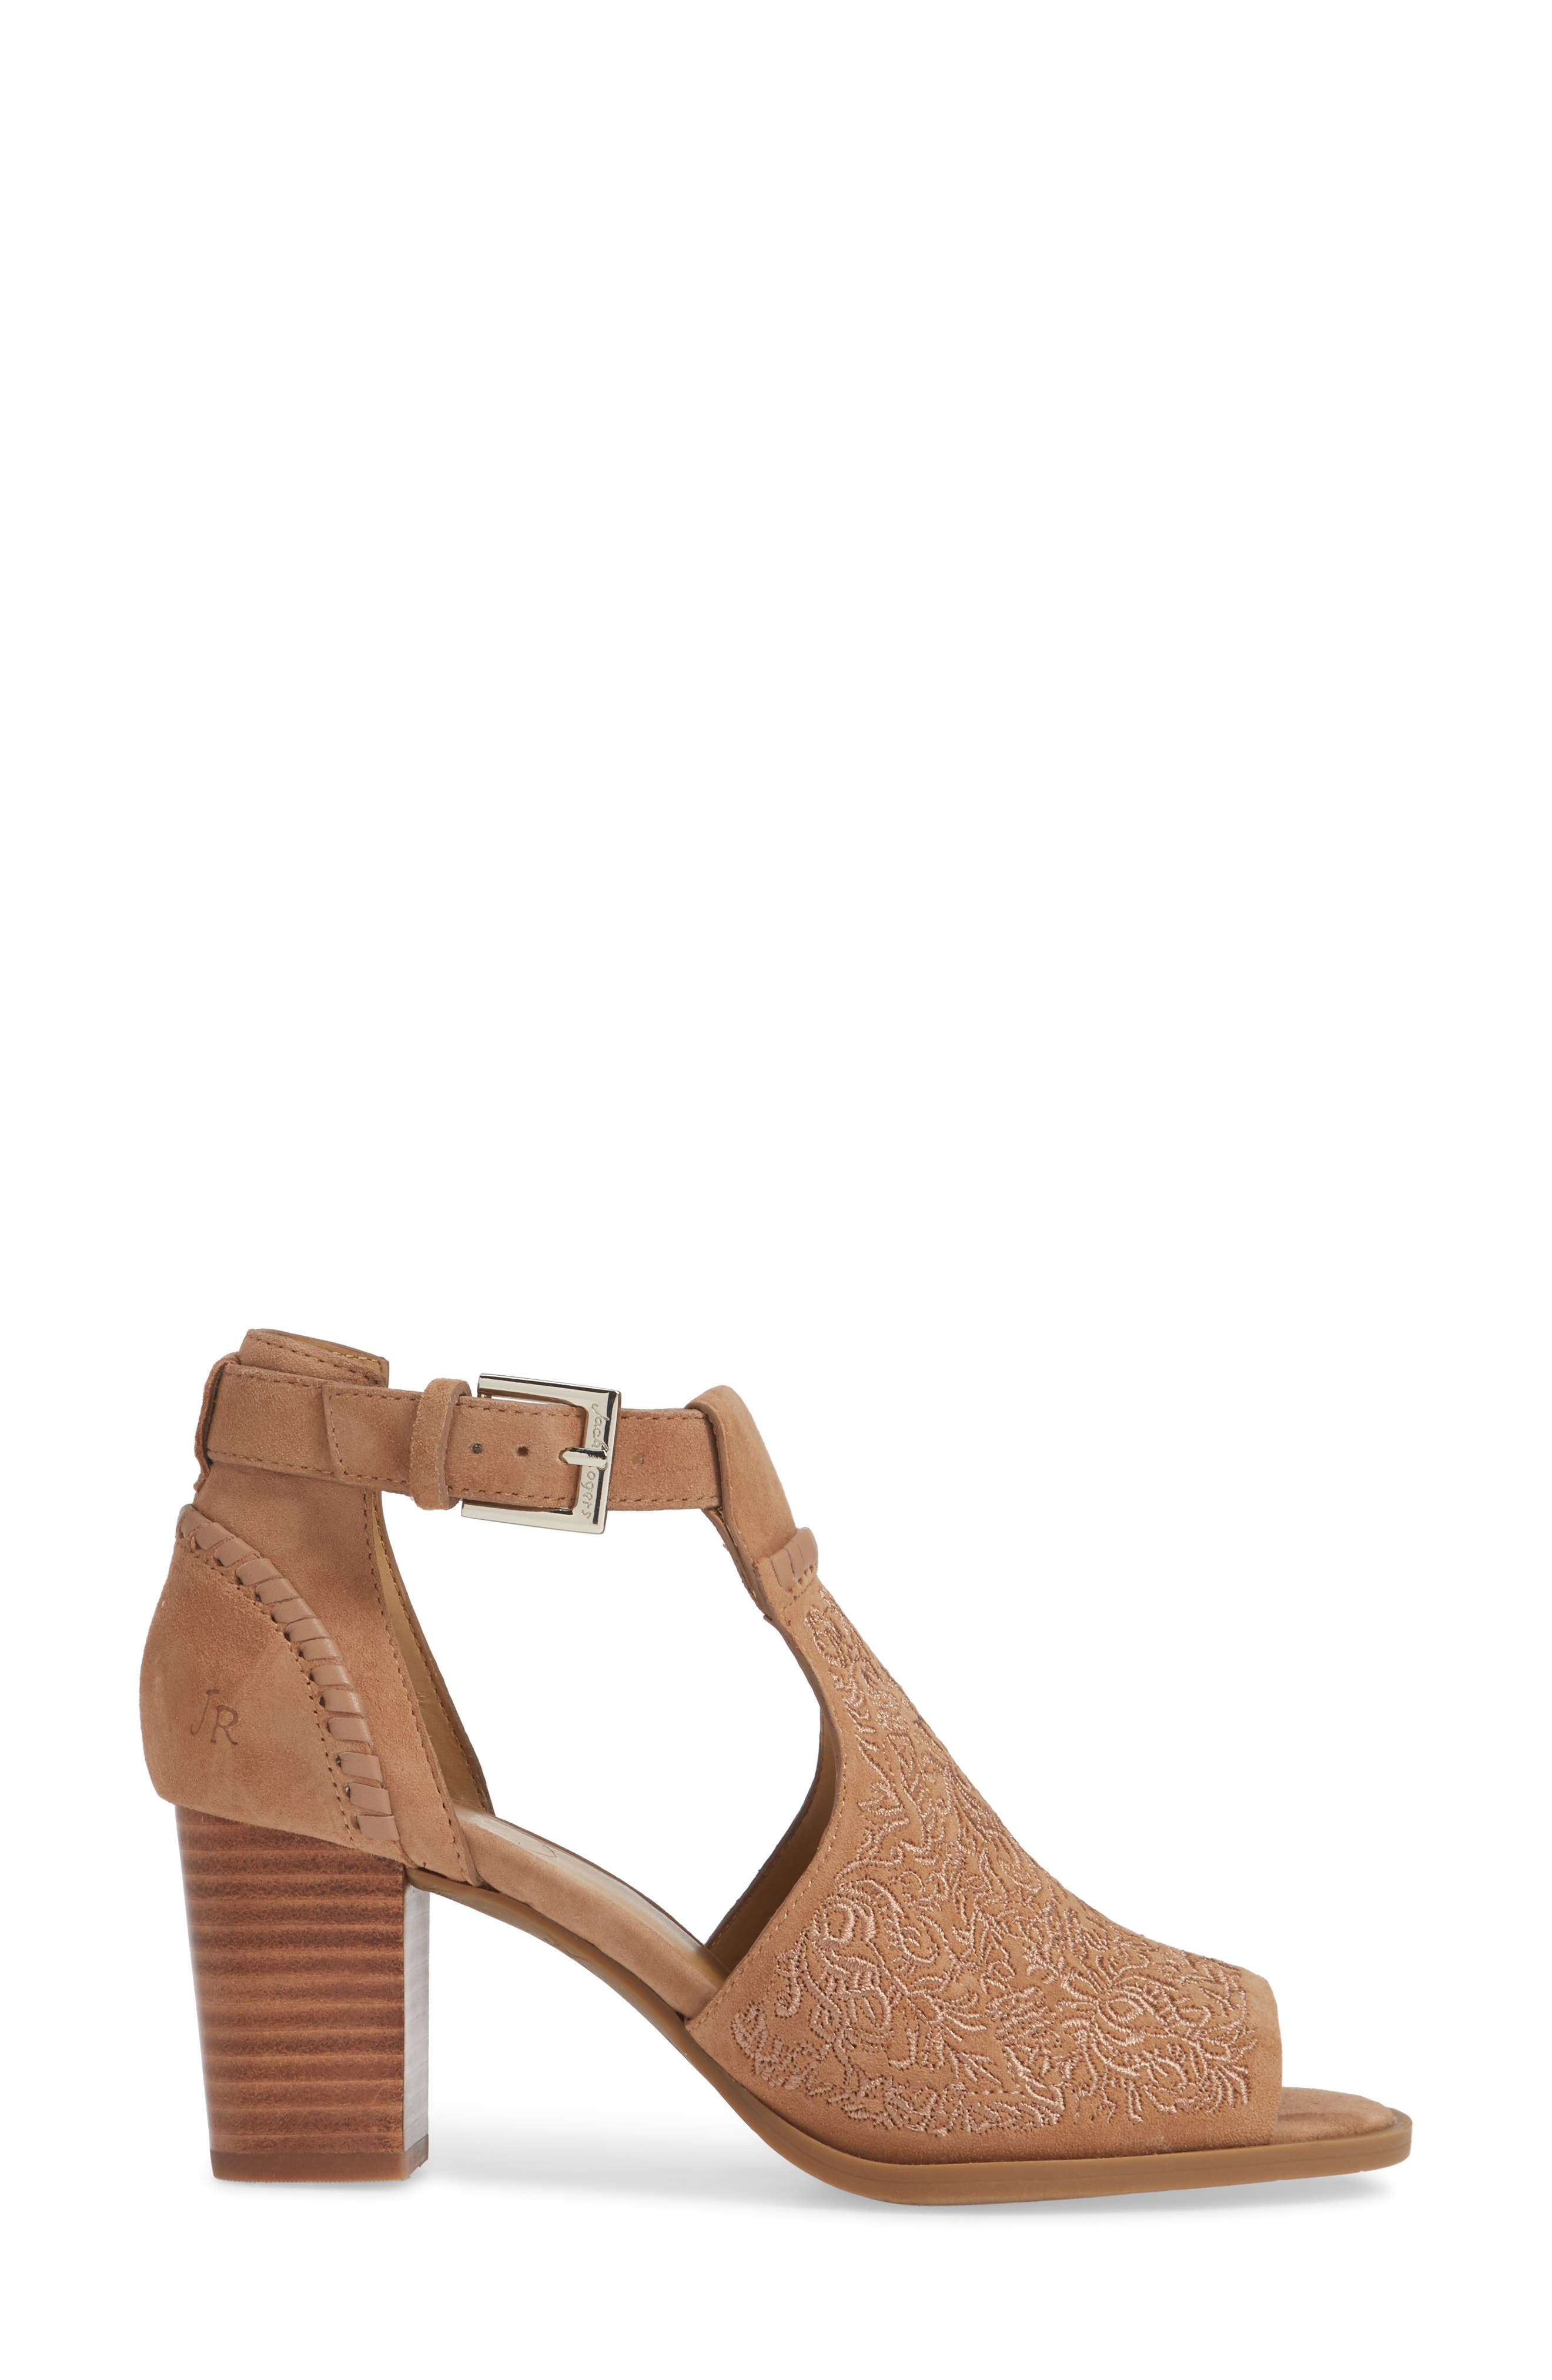 Cameron Block Heel Sandal,                             Alternate thumbnail 3, color,                             BROWN SUEDE